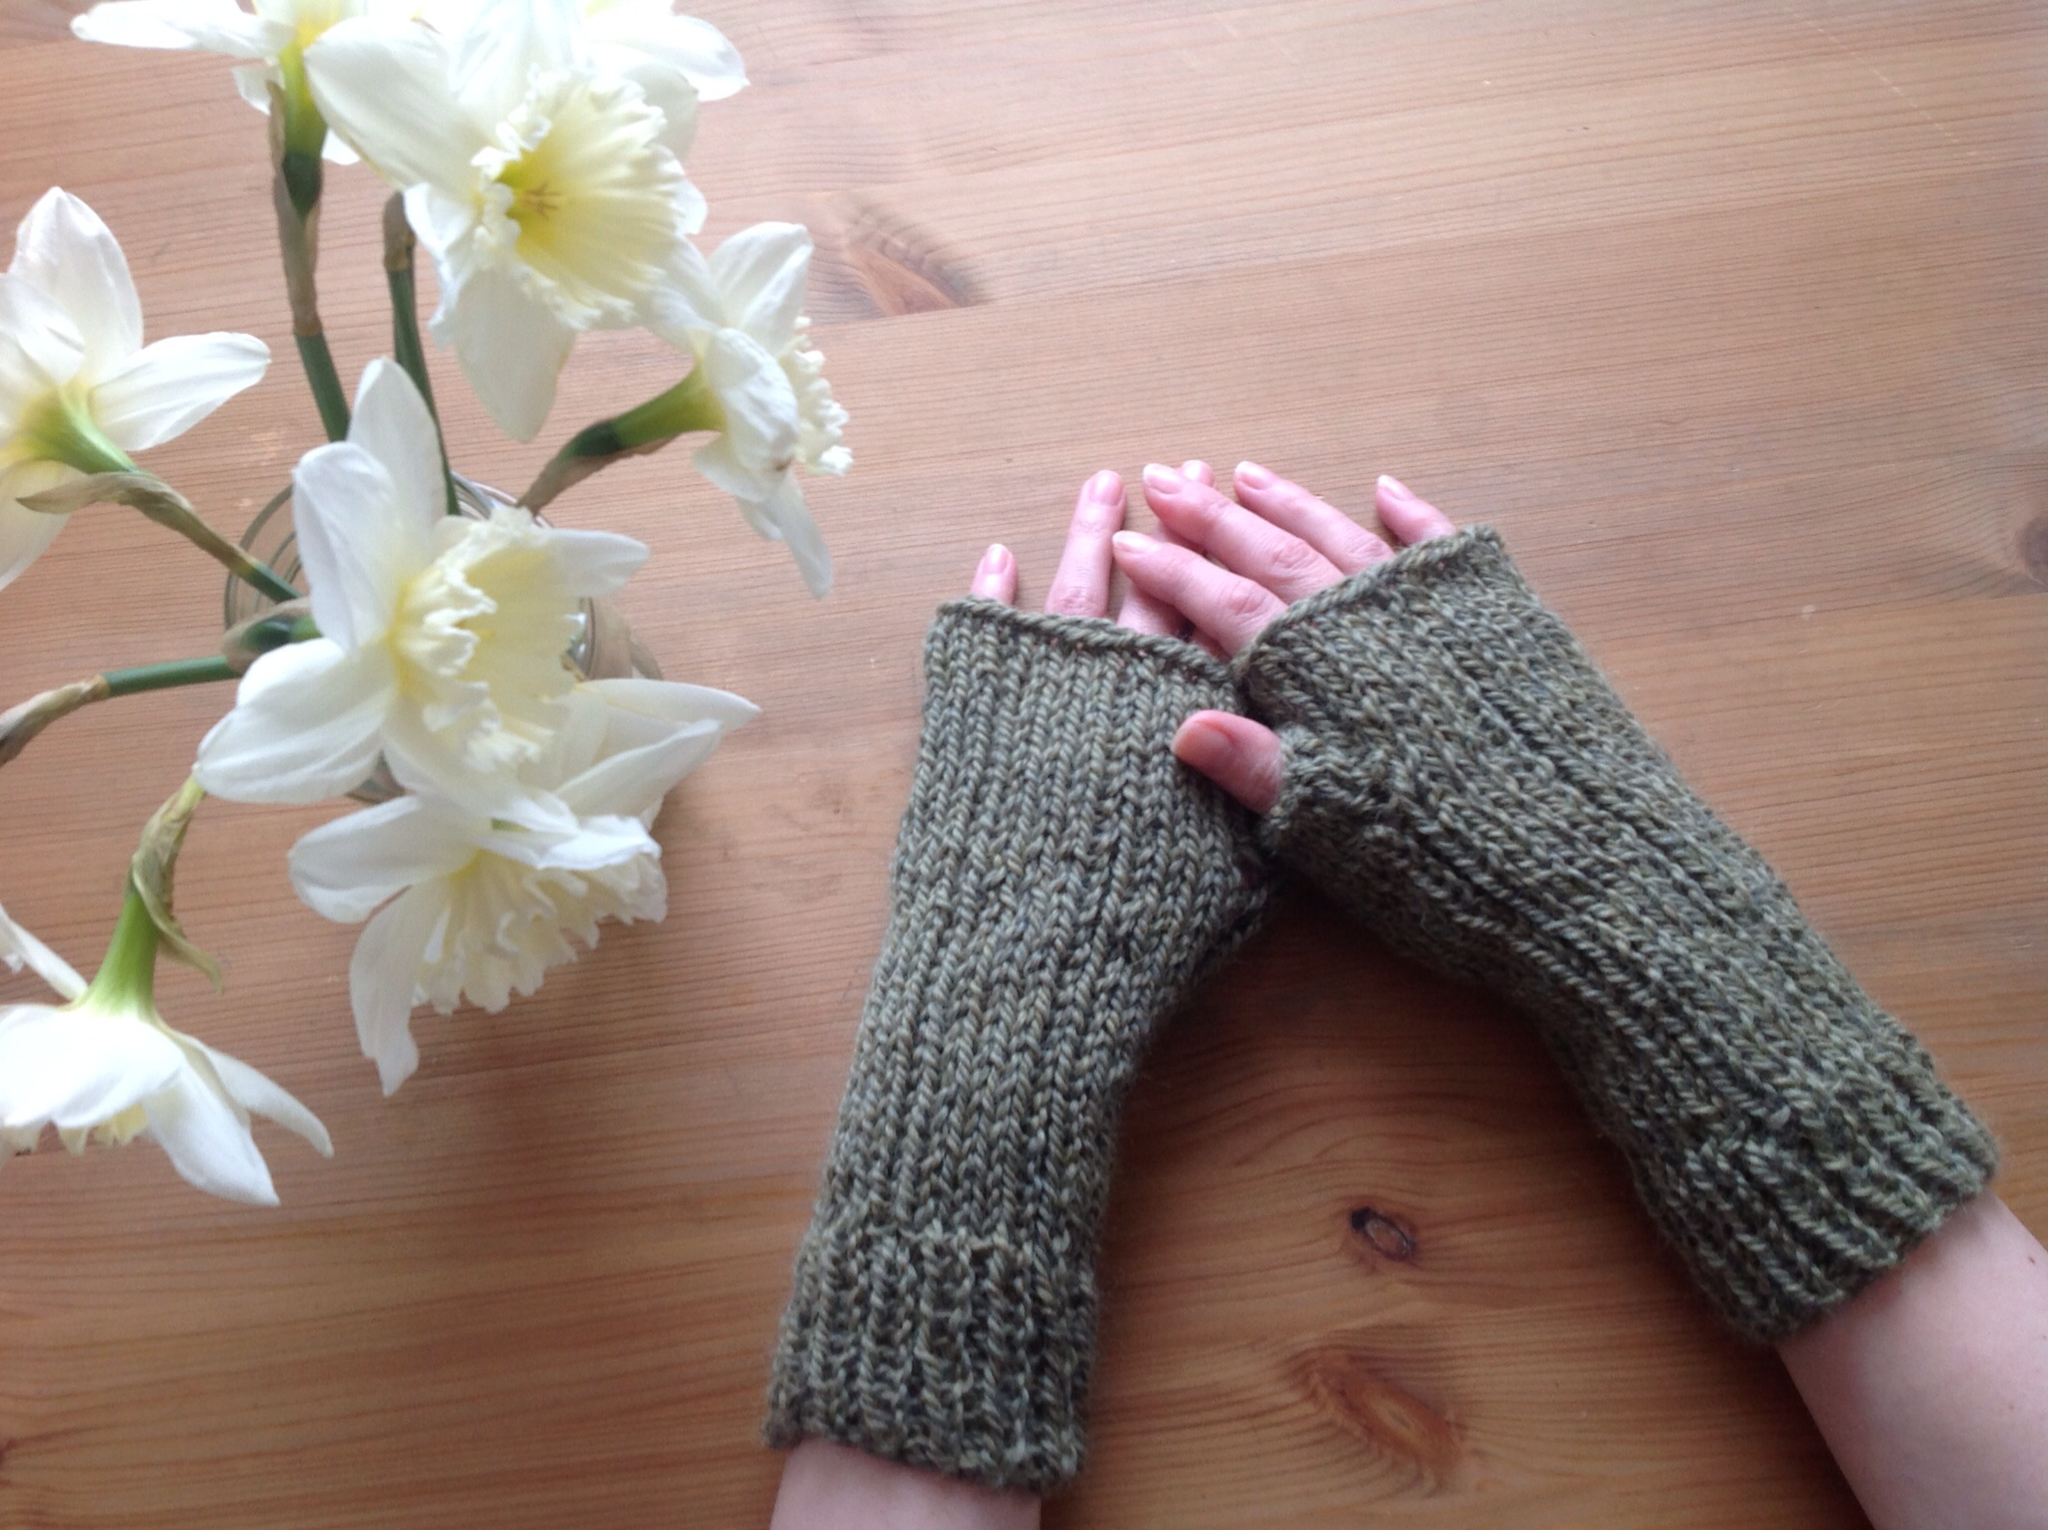 Grace paretree handmade monday easy knitted wrist warmers make handmade monday easy knitted wrist warmers make it to new york bankloansurffo Image collections